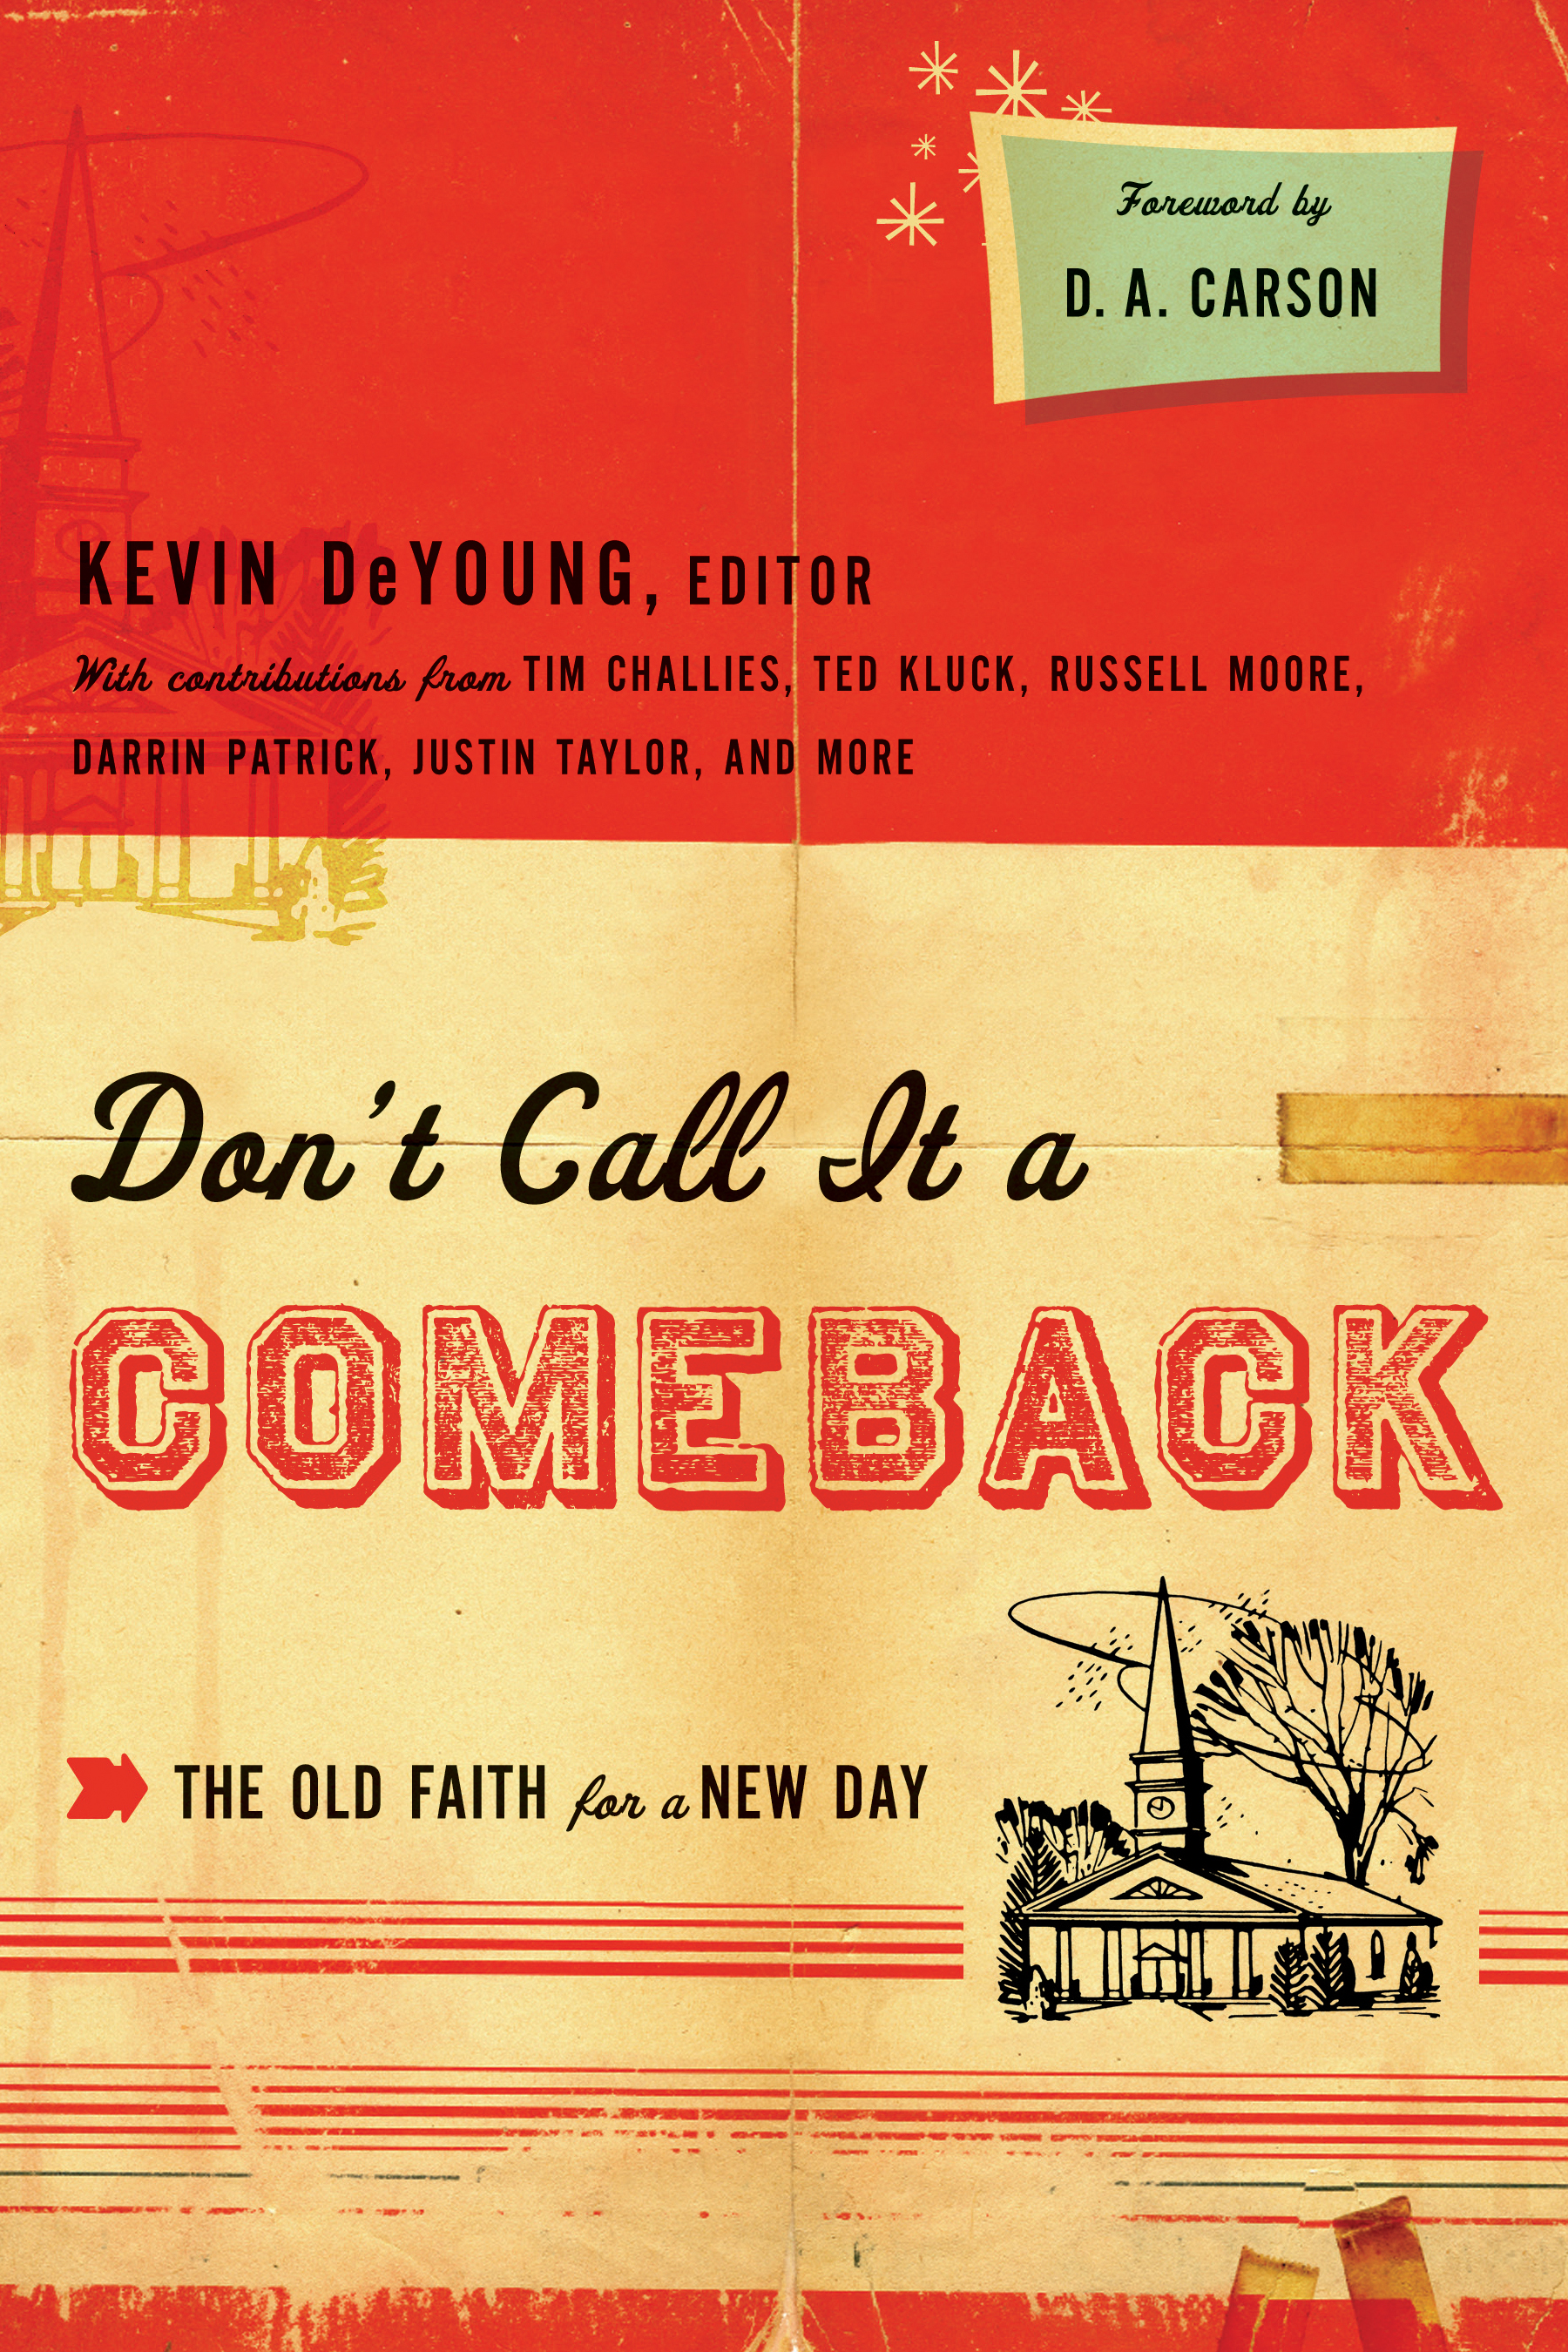 Don't Call It a Comeback (Foreword by D. A. Carson): The Old Faith for a New Day